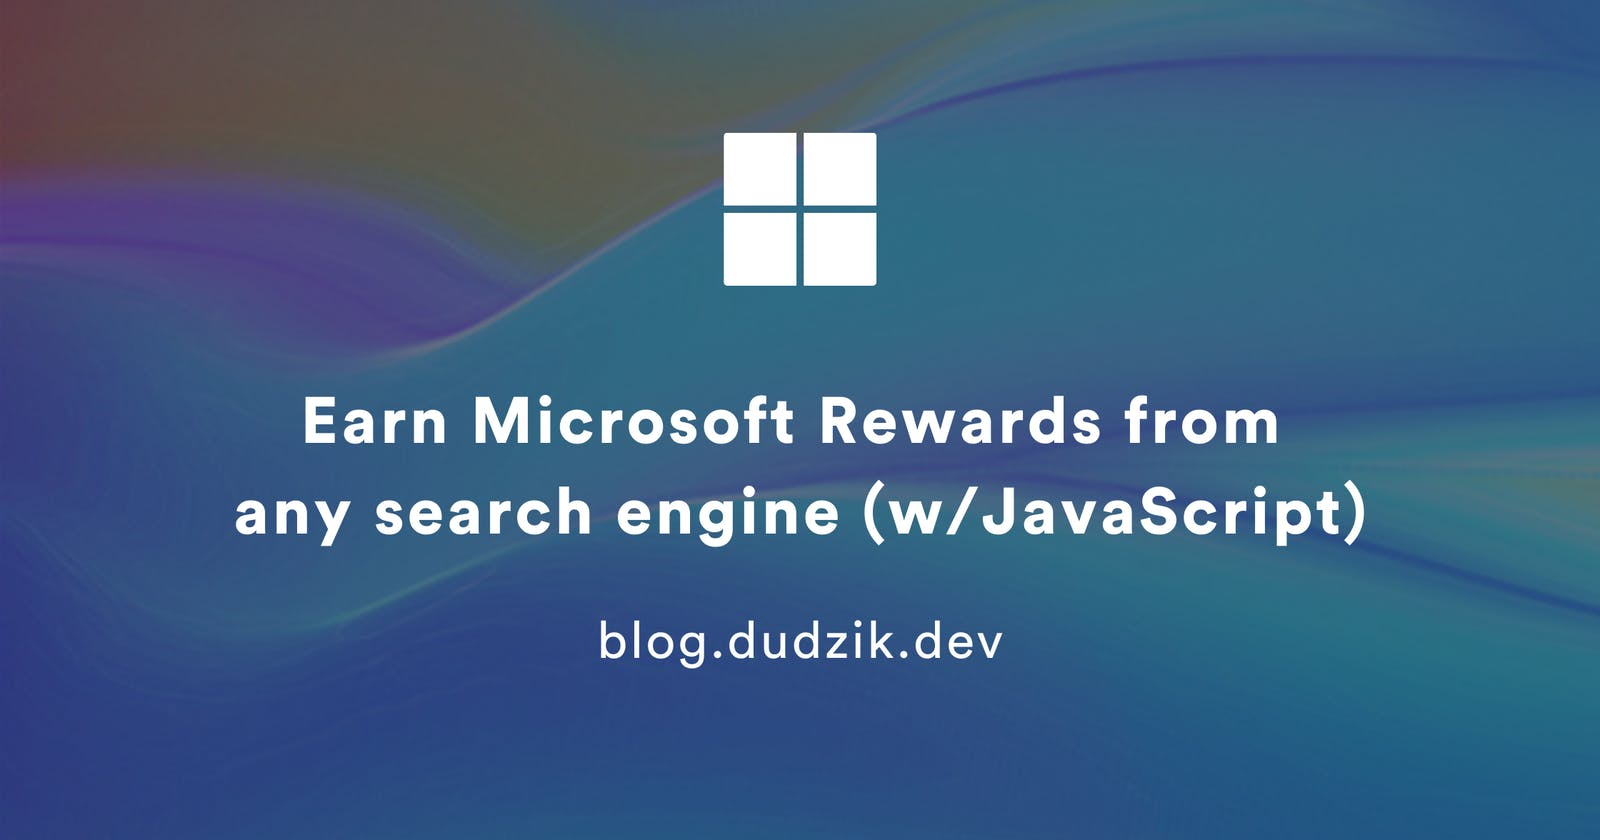 Earn Microsoft Rewards from any search engine (w/JavaScript)